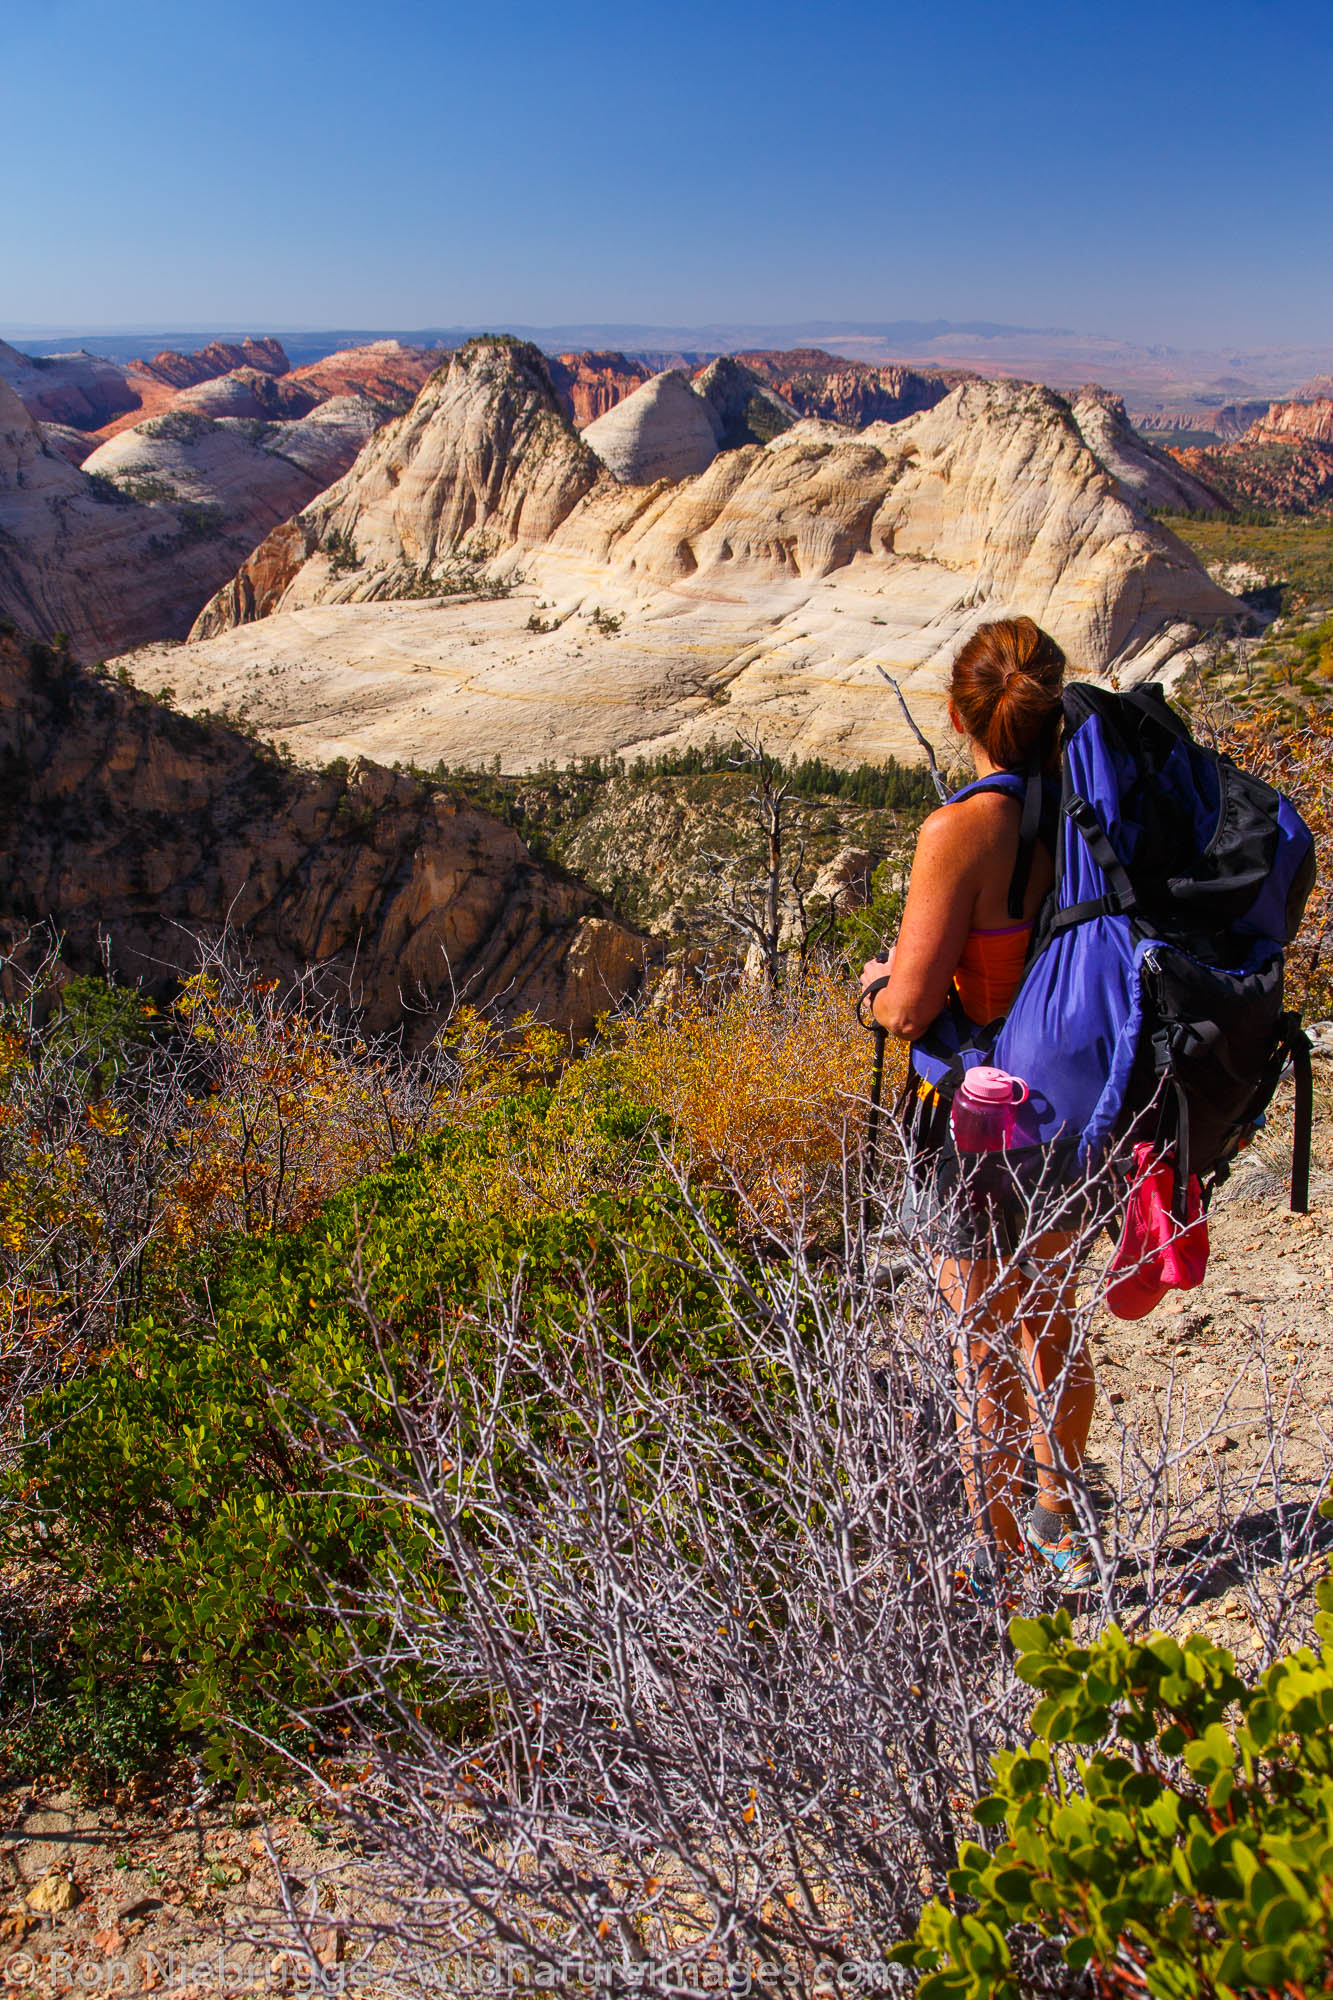 Backpacking on the West Rim Trail, Zion National Park, Utah.